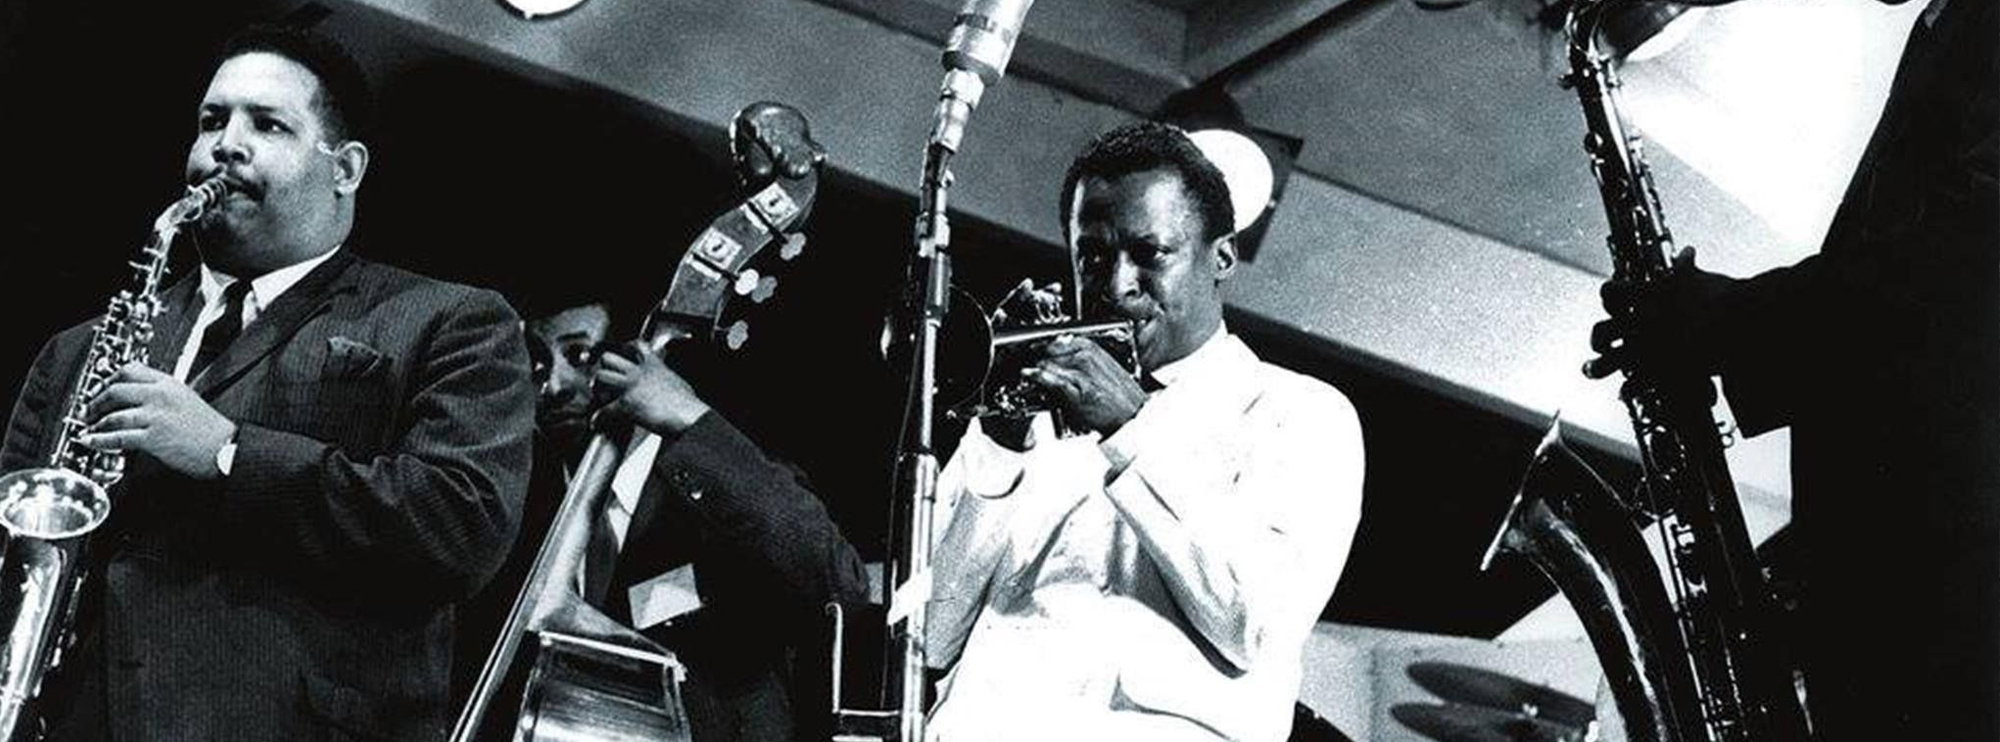 The Records of Miles Davis' Sidemen, Part I: The First Great Quintet